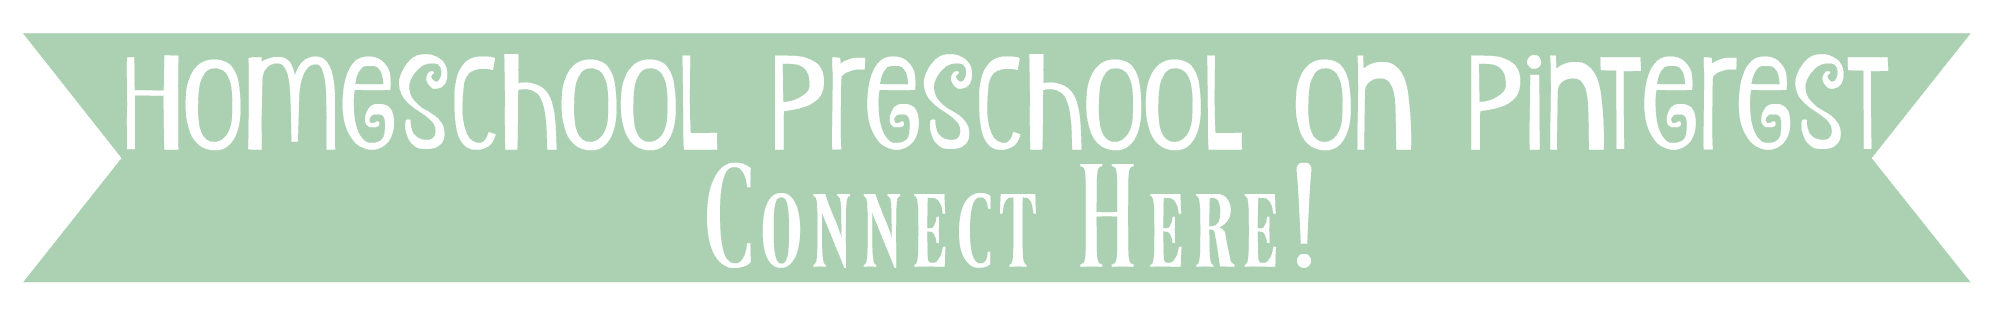 Homeschool Preschool on Pinterest Connect Here